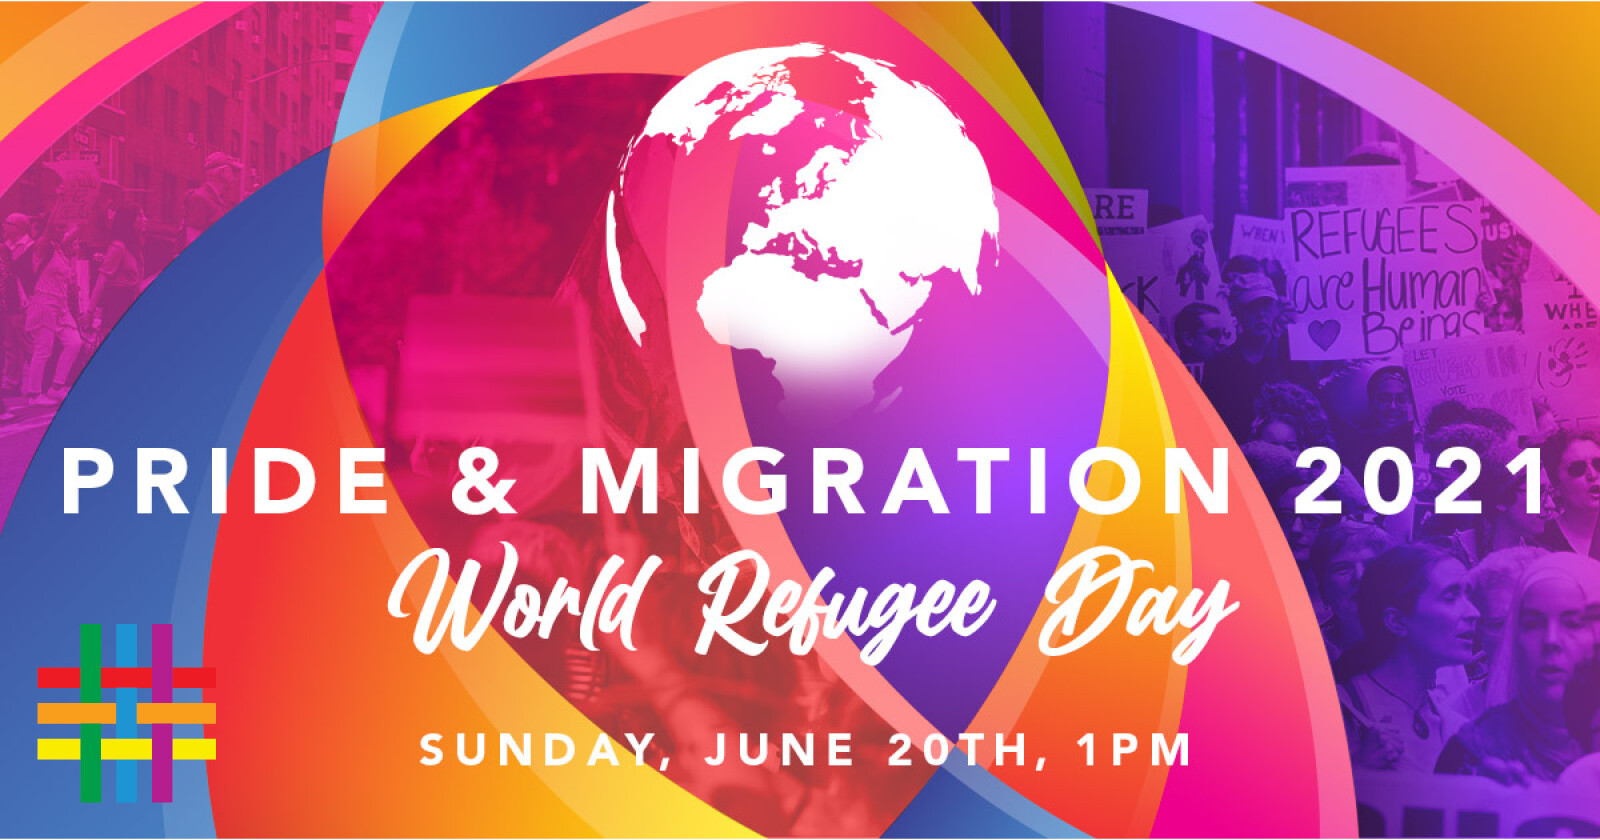 World Refugee Day 2021 at Brooklyn Community Pride Center